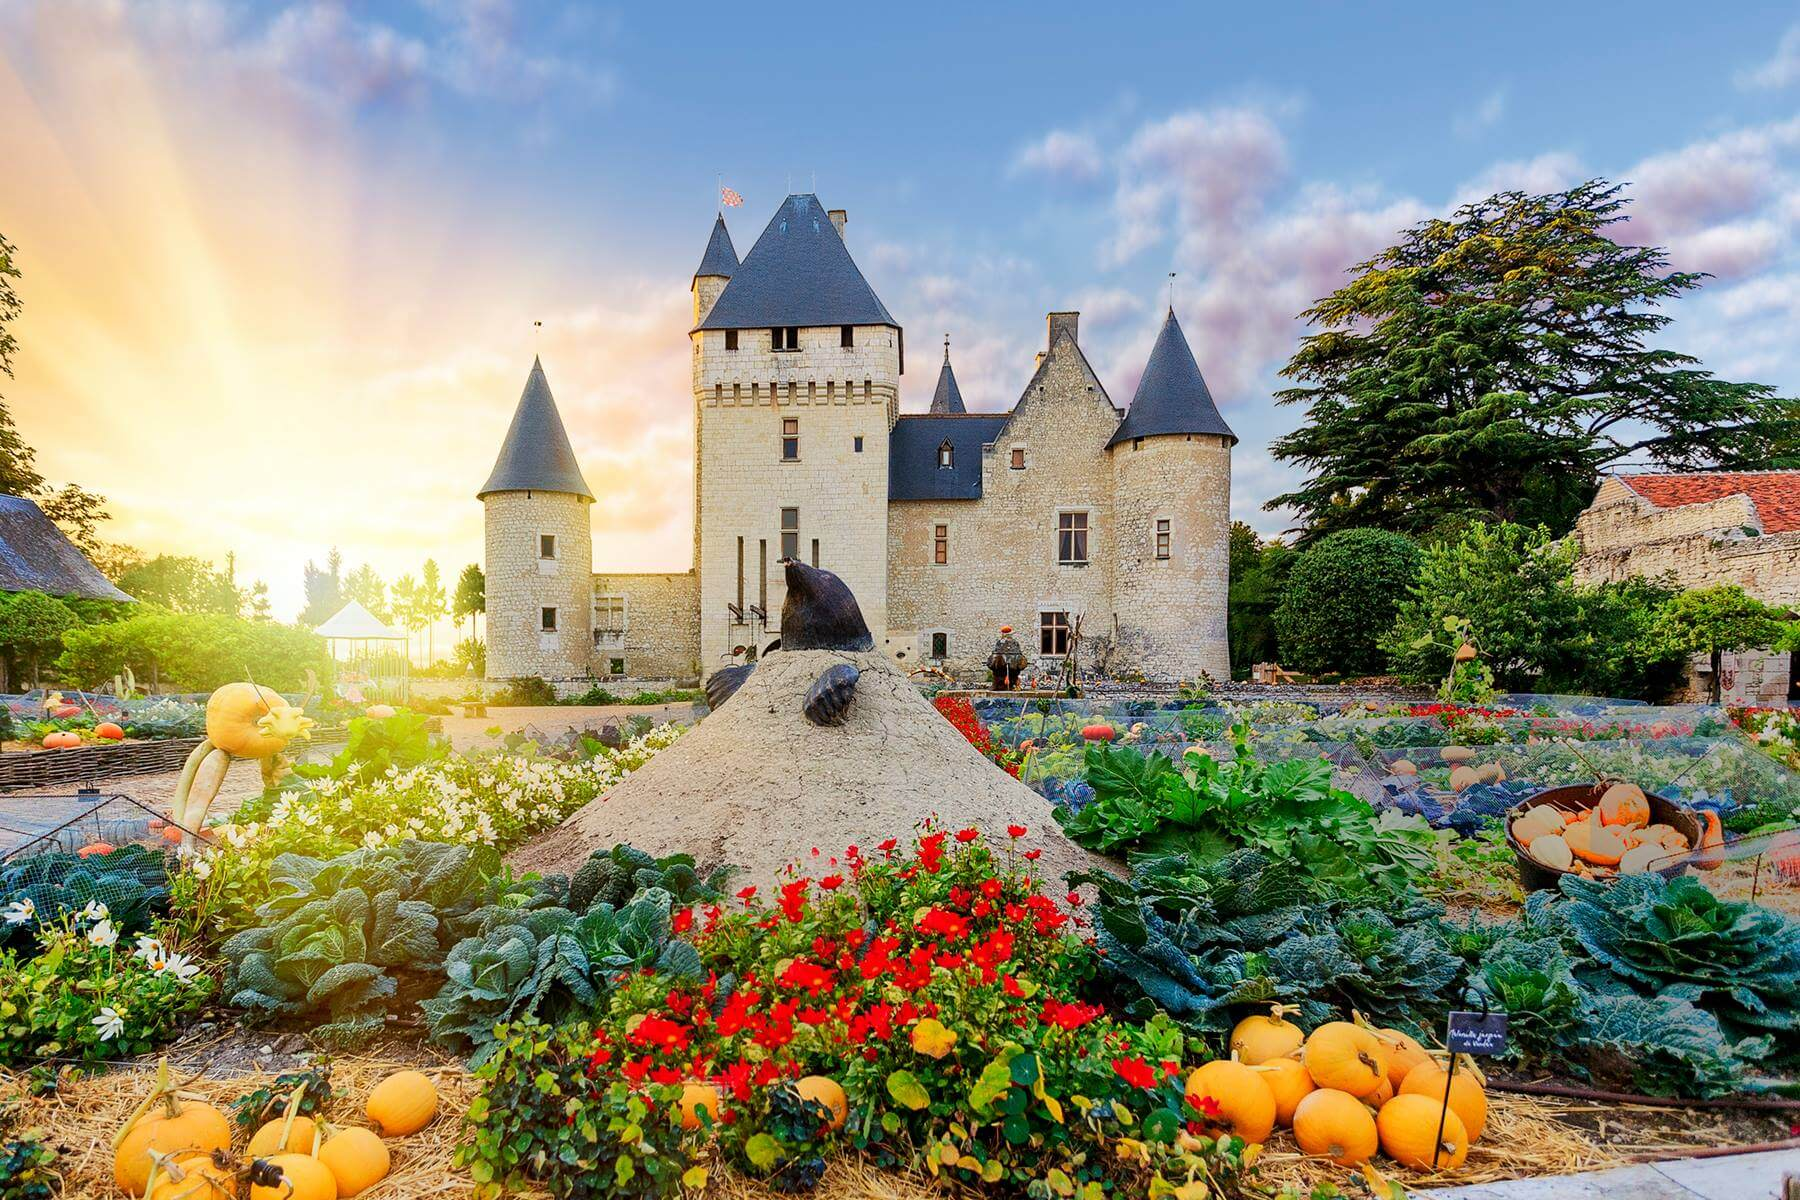 Loire Valley Super stay Comfort, 3 Day Tours and 2 nights in